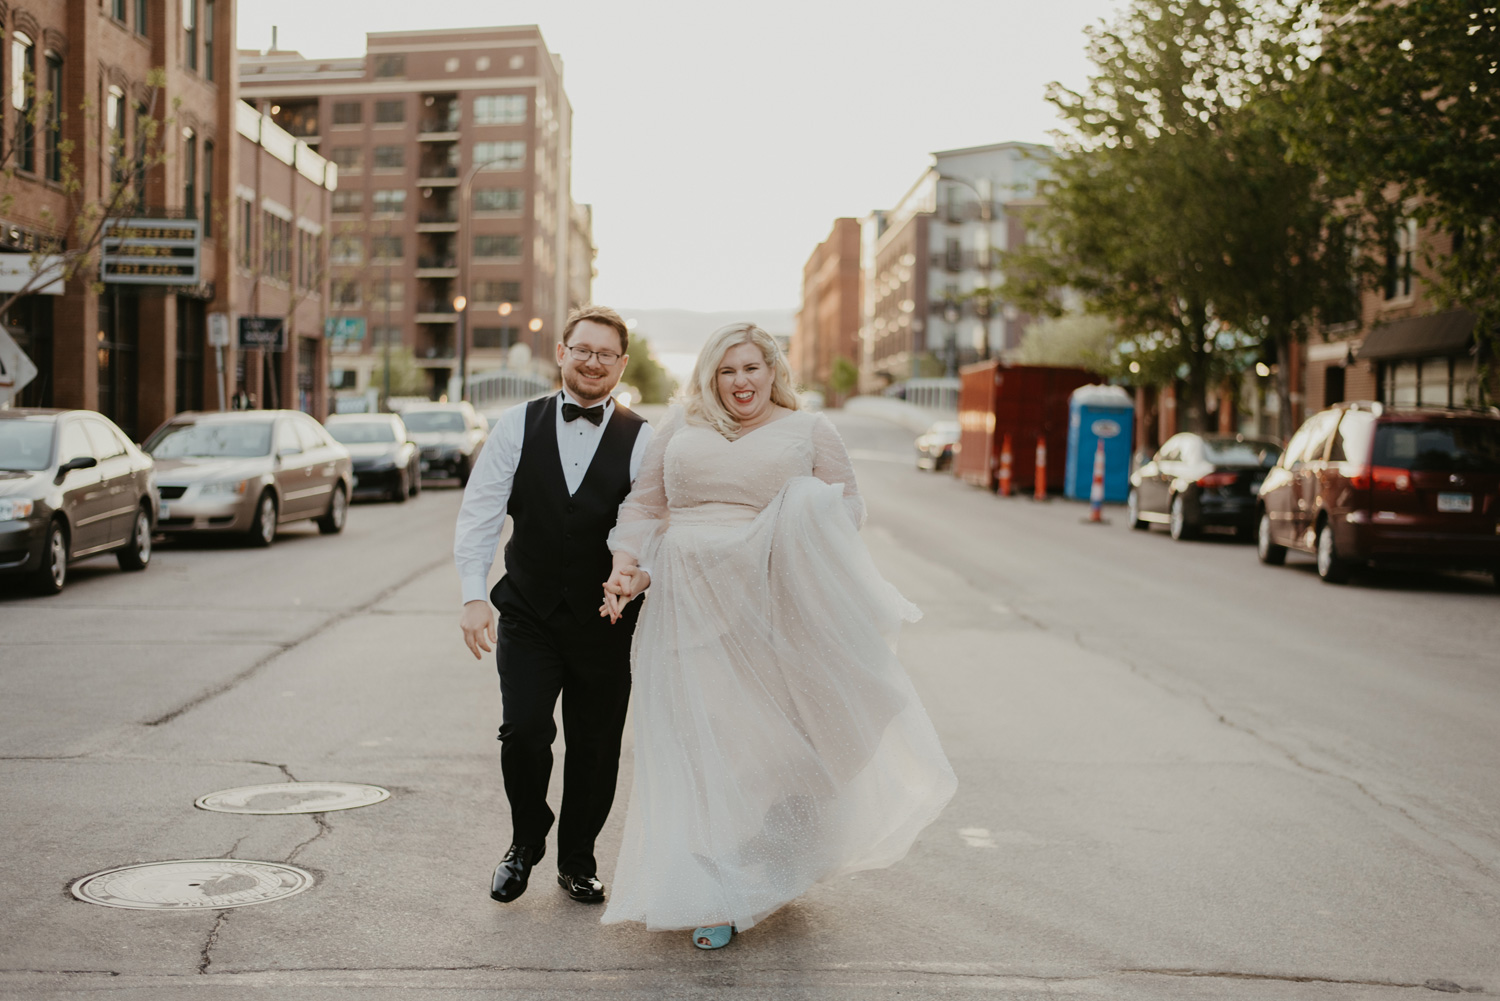 Bride and groom twirling in the middle of Minneapolis street during sunset